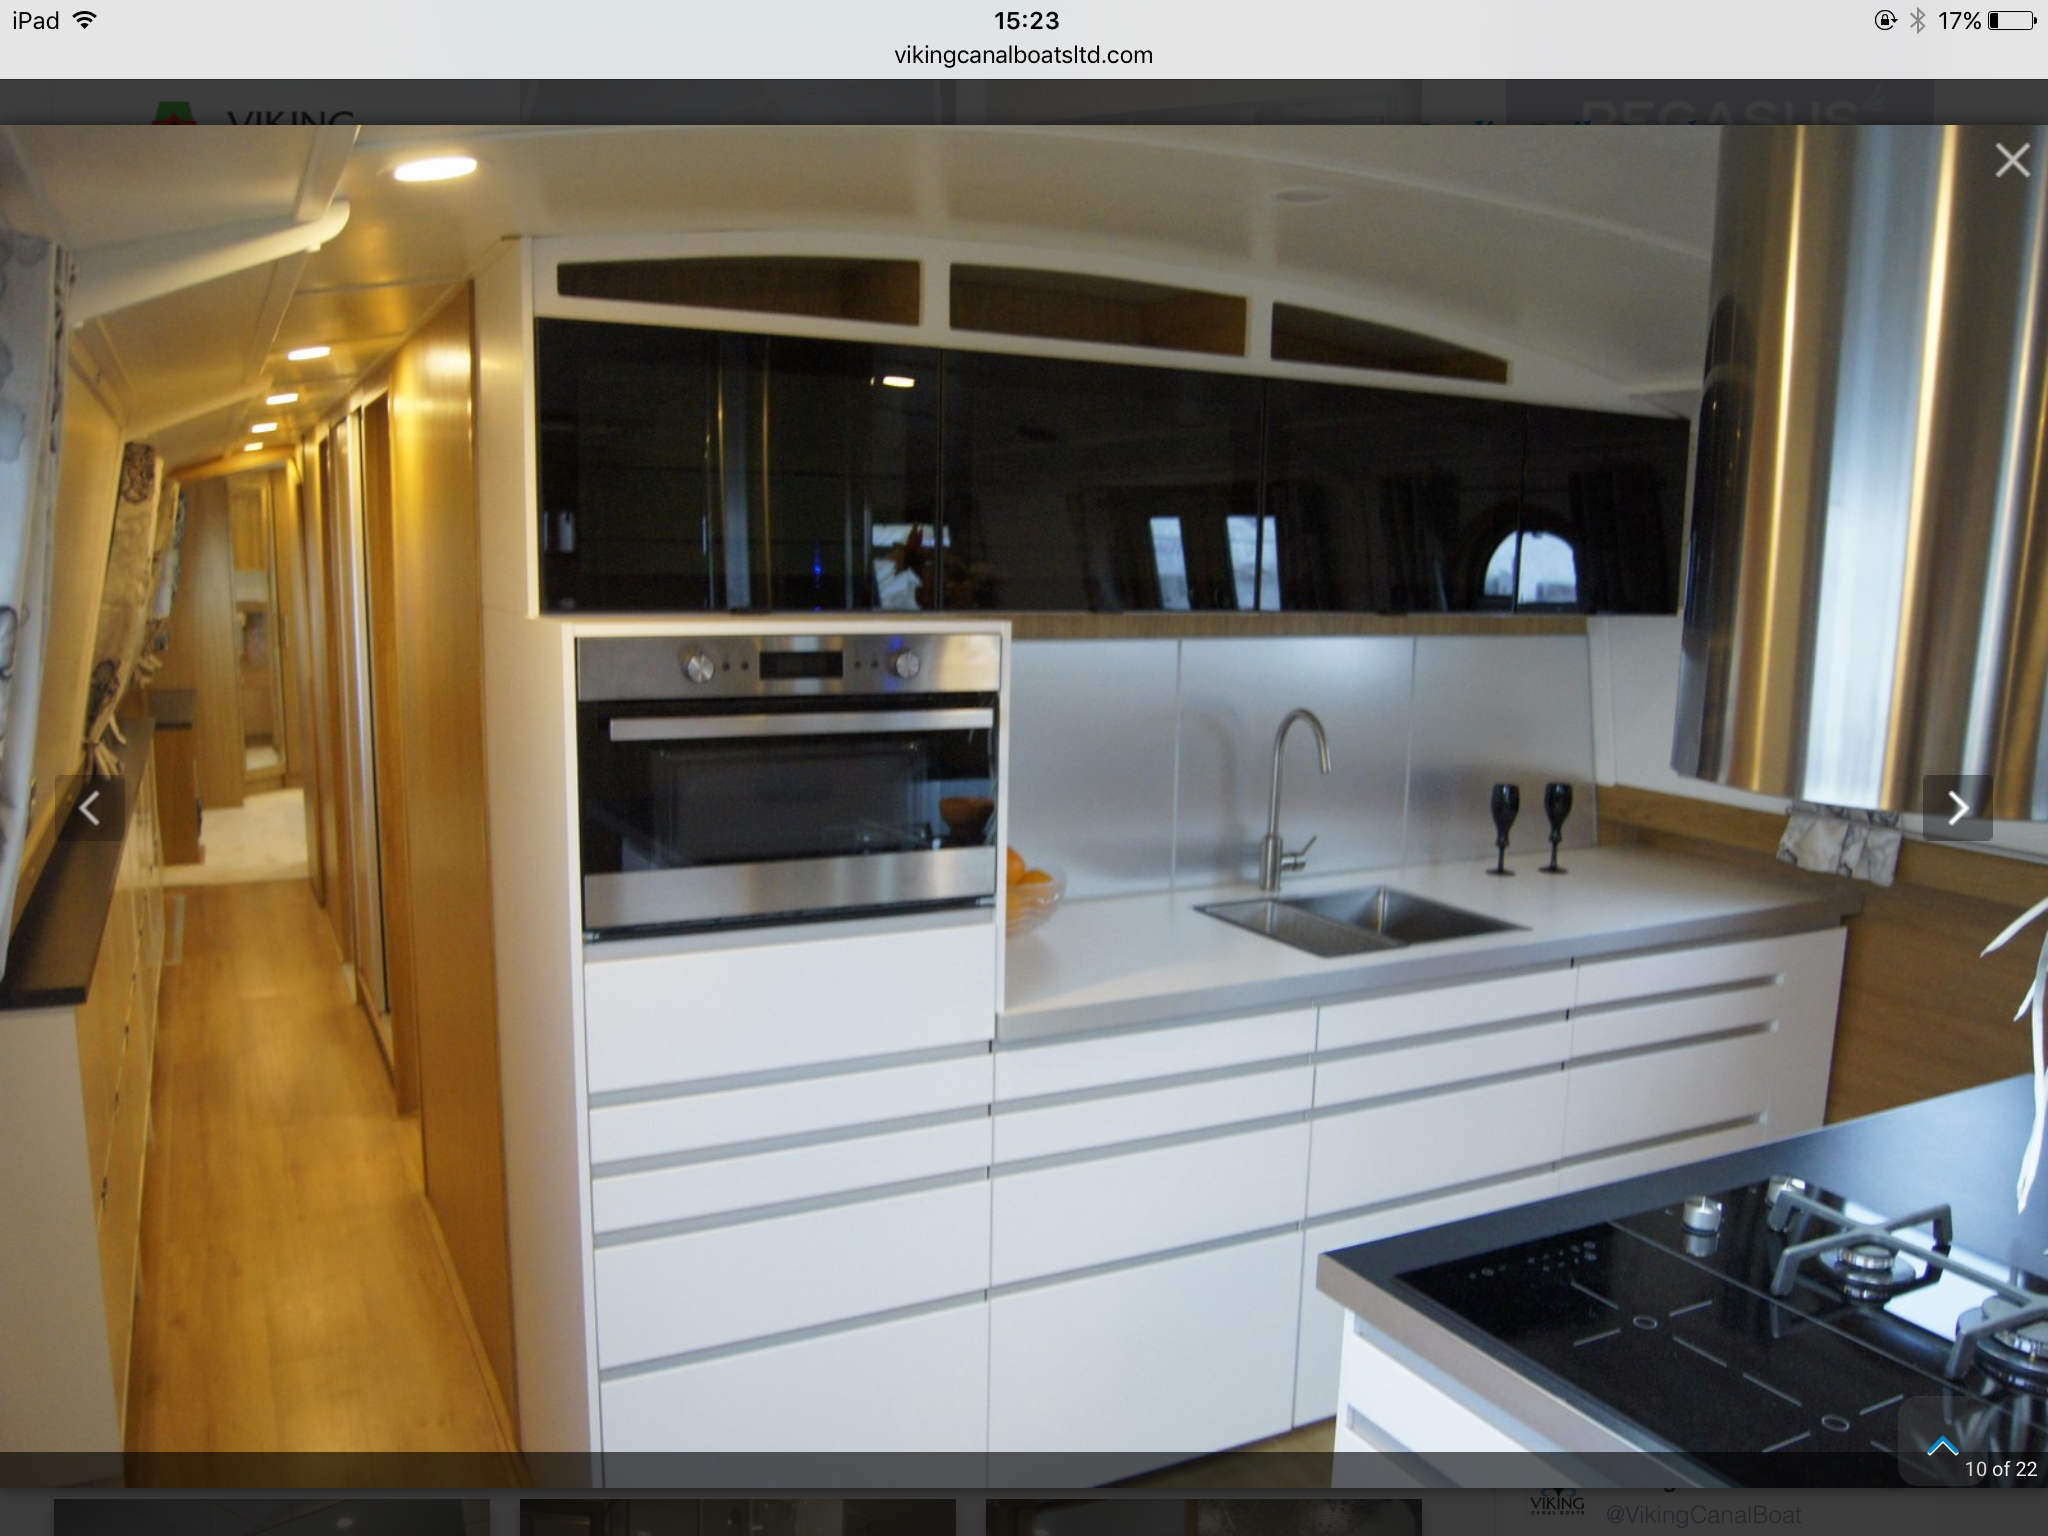 Pin by Tintinschildminding on Canal boat | Kitchen cabinets, Home decor, Kitchen